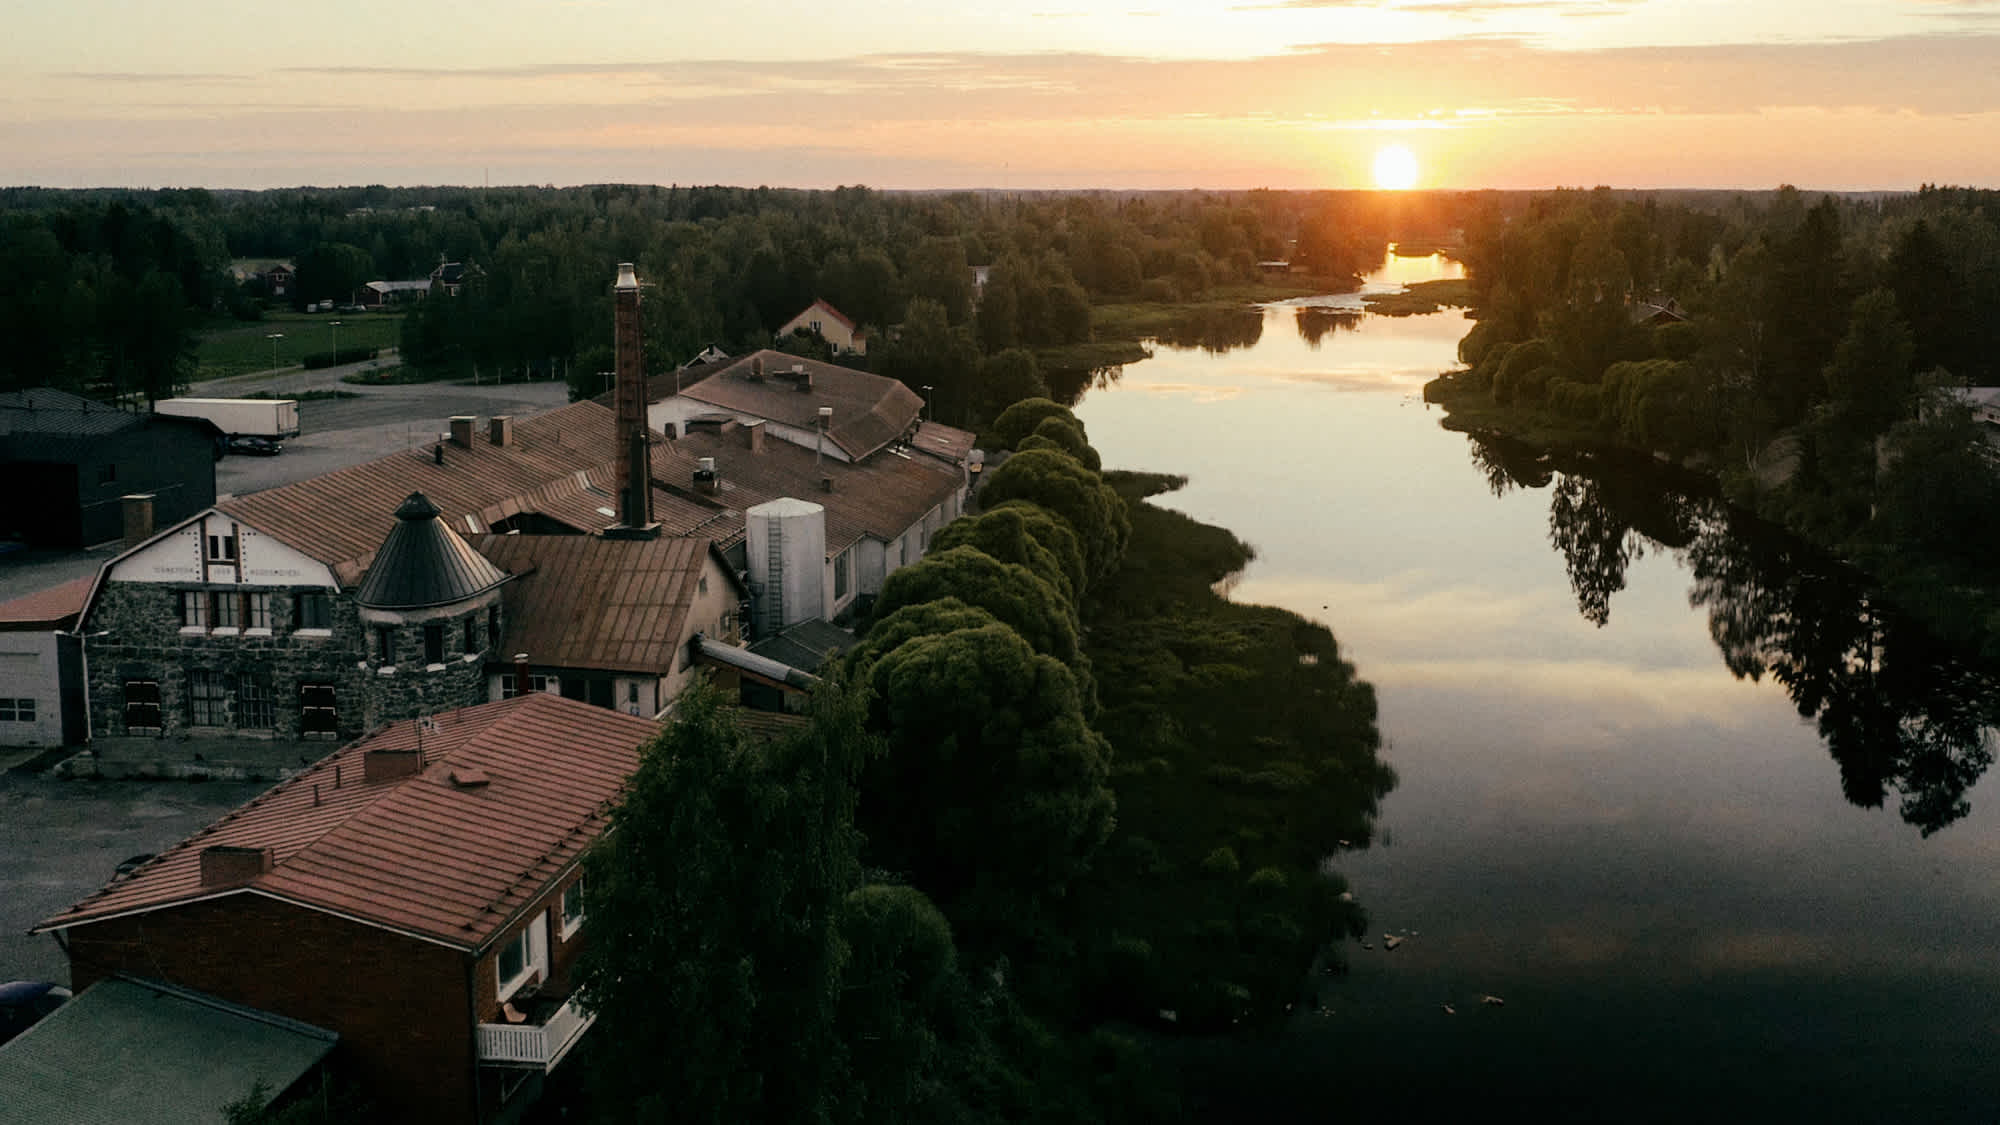 View of Isokyrö and Kyrö Distillery from above with a sunset.